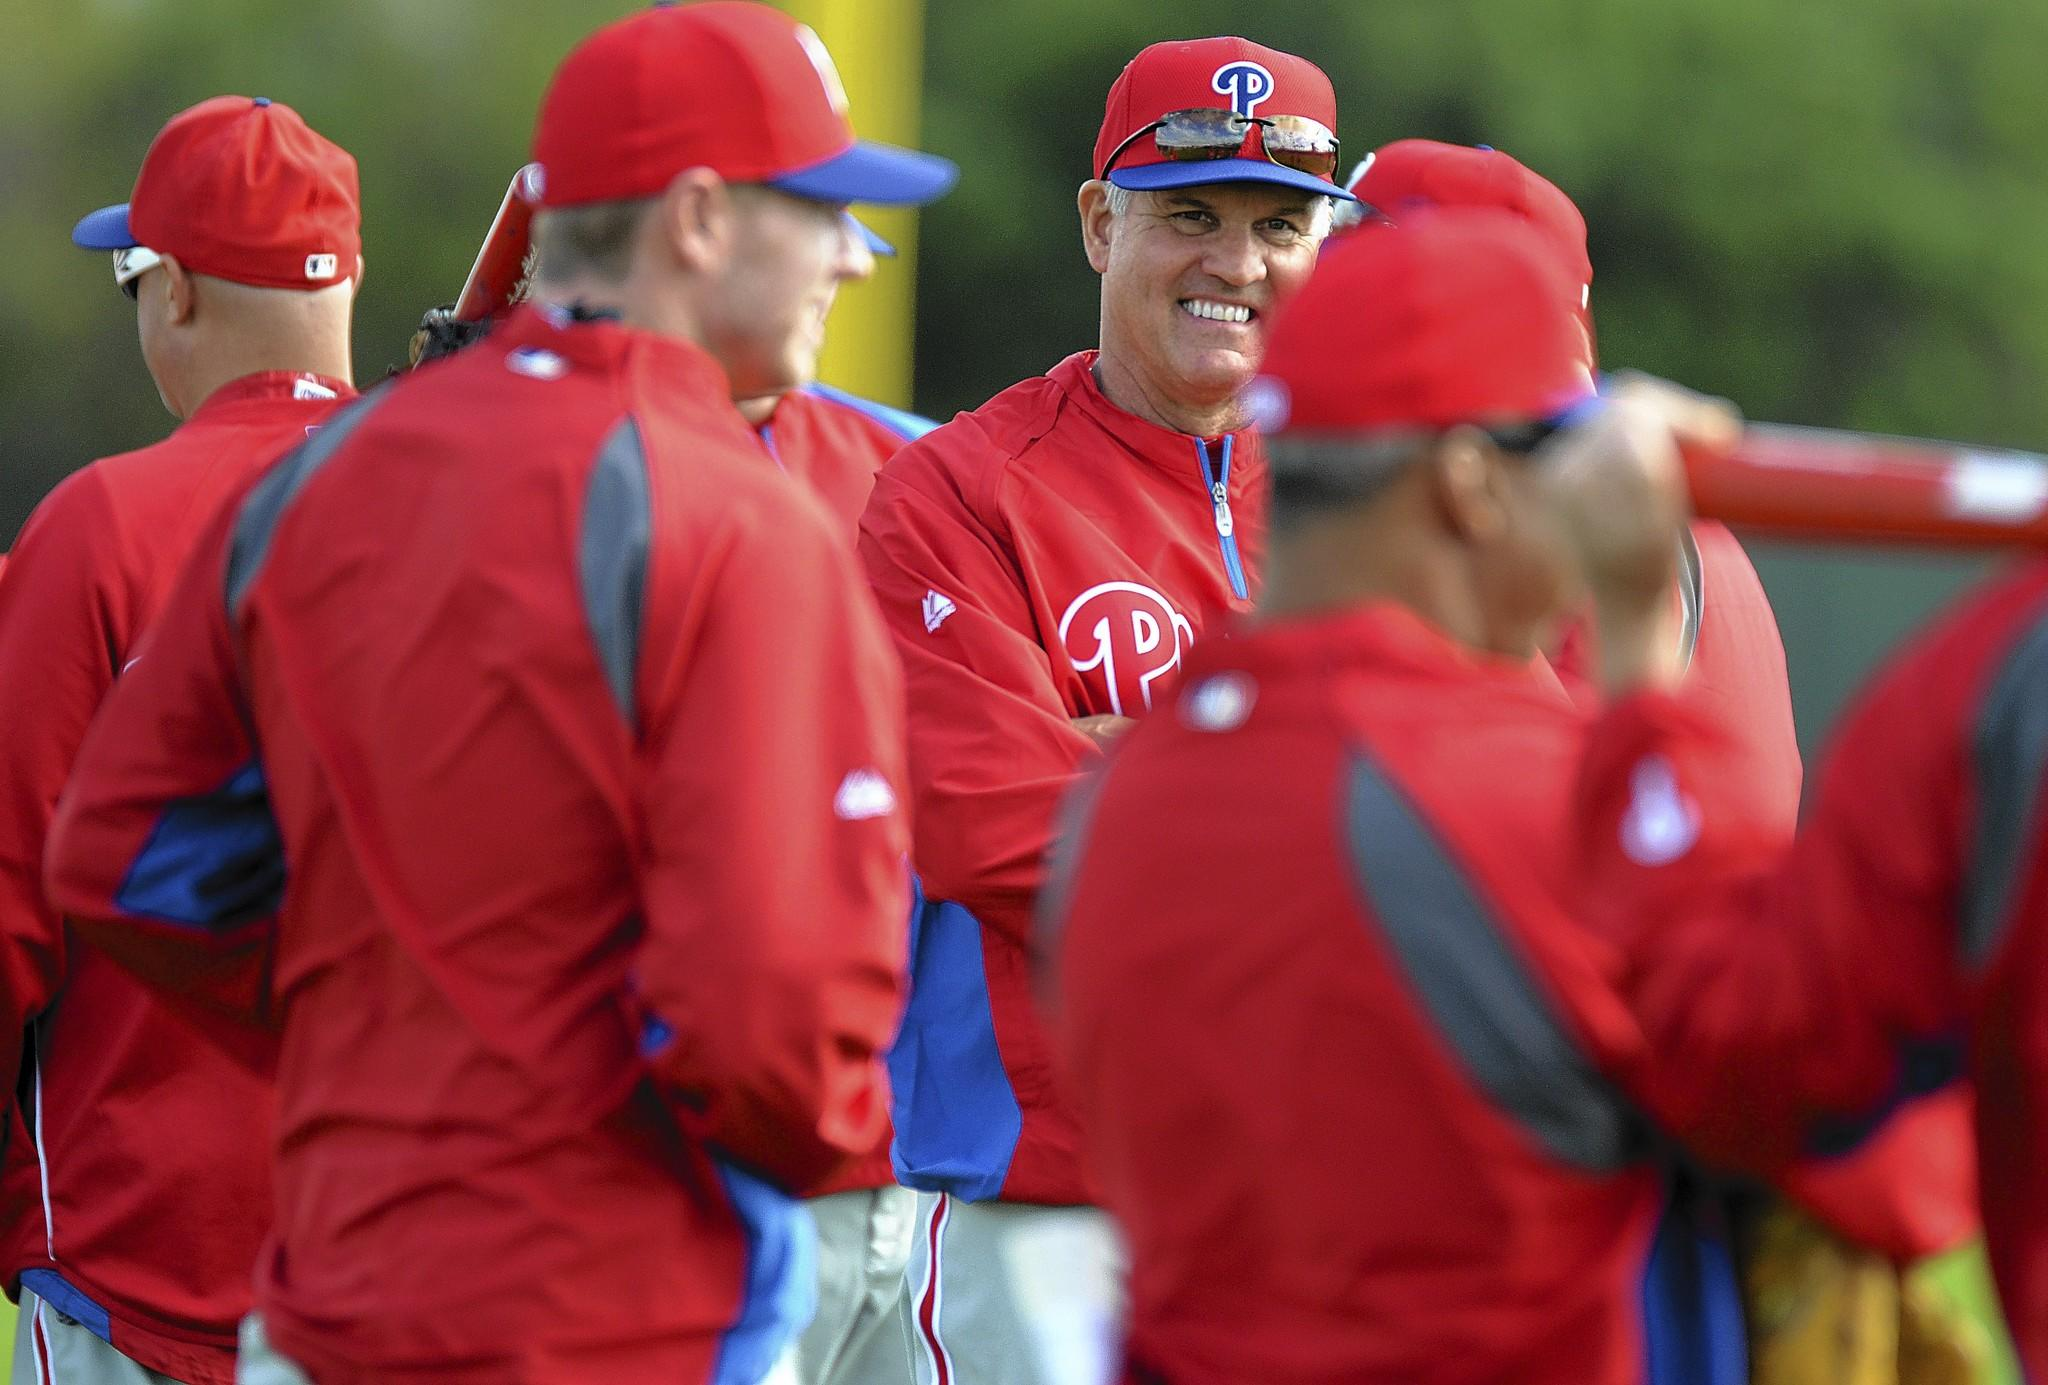 Phillies manager Ryne Sandberg talks with his players at the start of Thursday's workout at Bright House Networks Field in Clearwater, Fla.